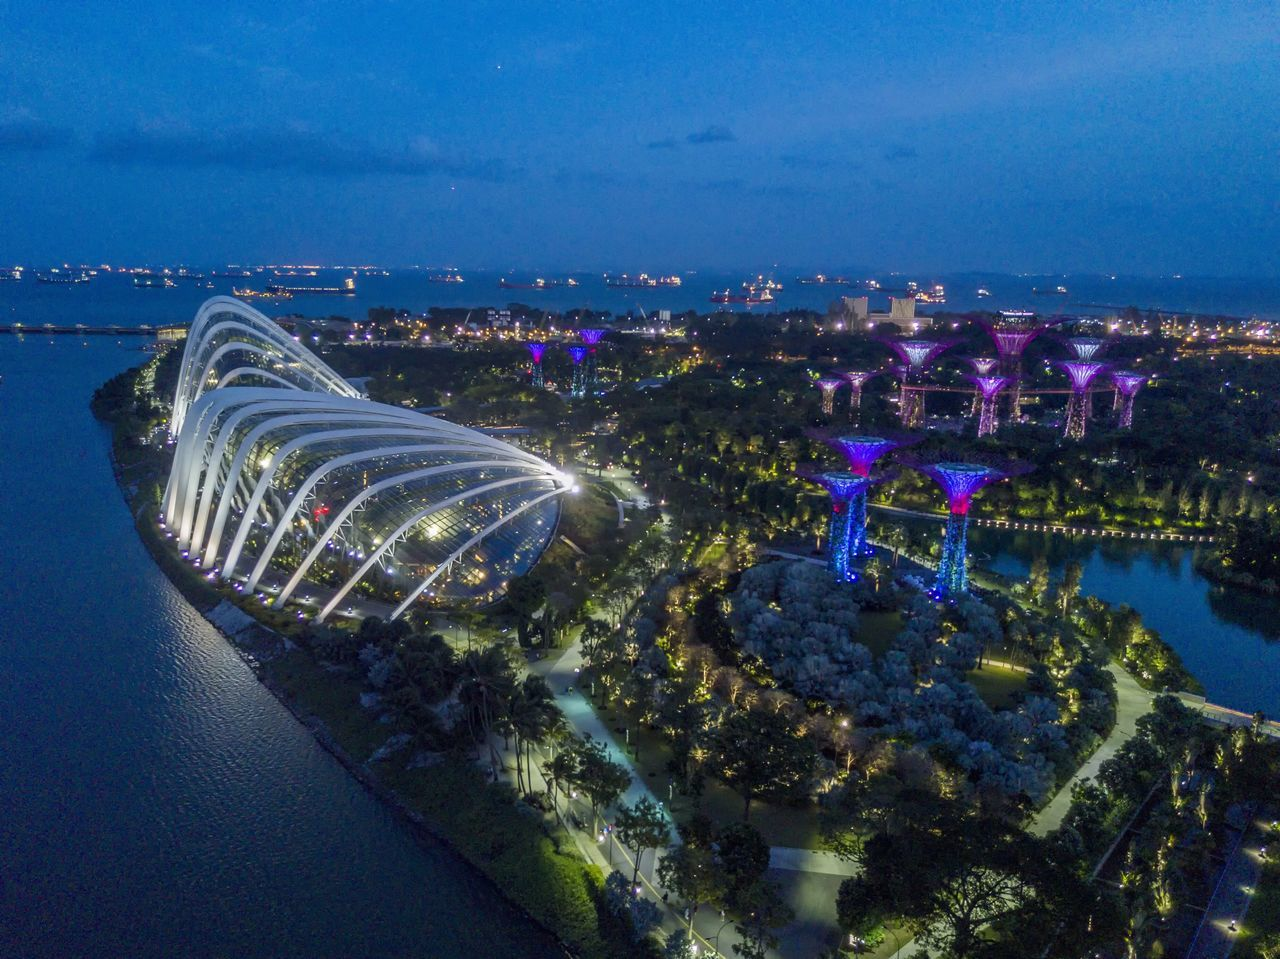 City Sky Architecture Sea Illuminated Building Exterior Cityscape Water Built Structure Outdoors No People Nature Night Skyscraper Gardensbythebaysingapore Dronephotography Droneshot Skyline Flying High